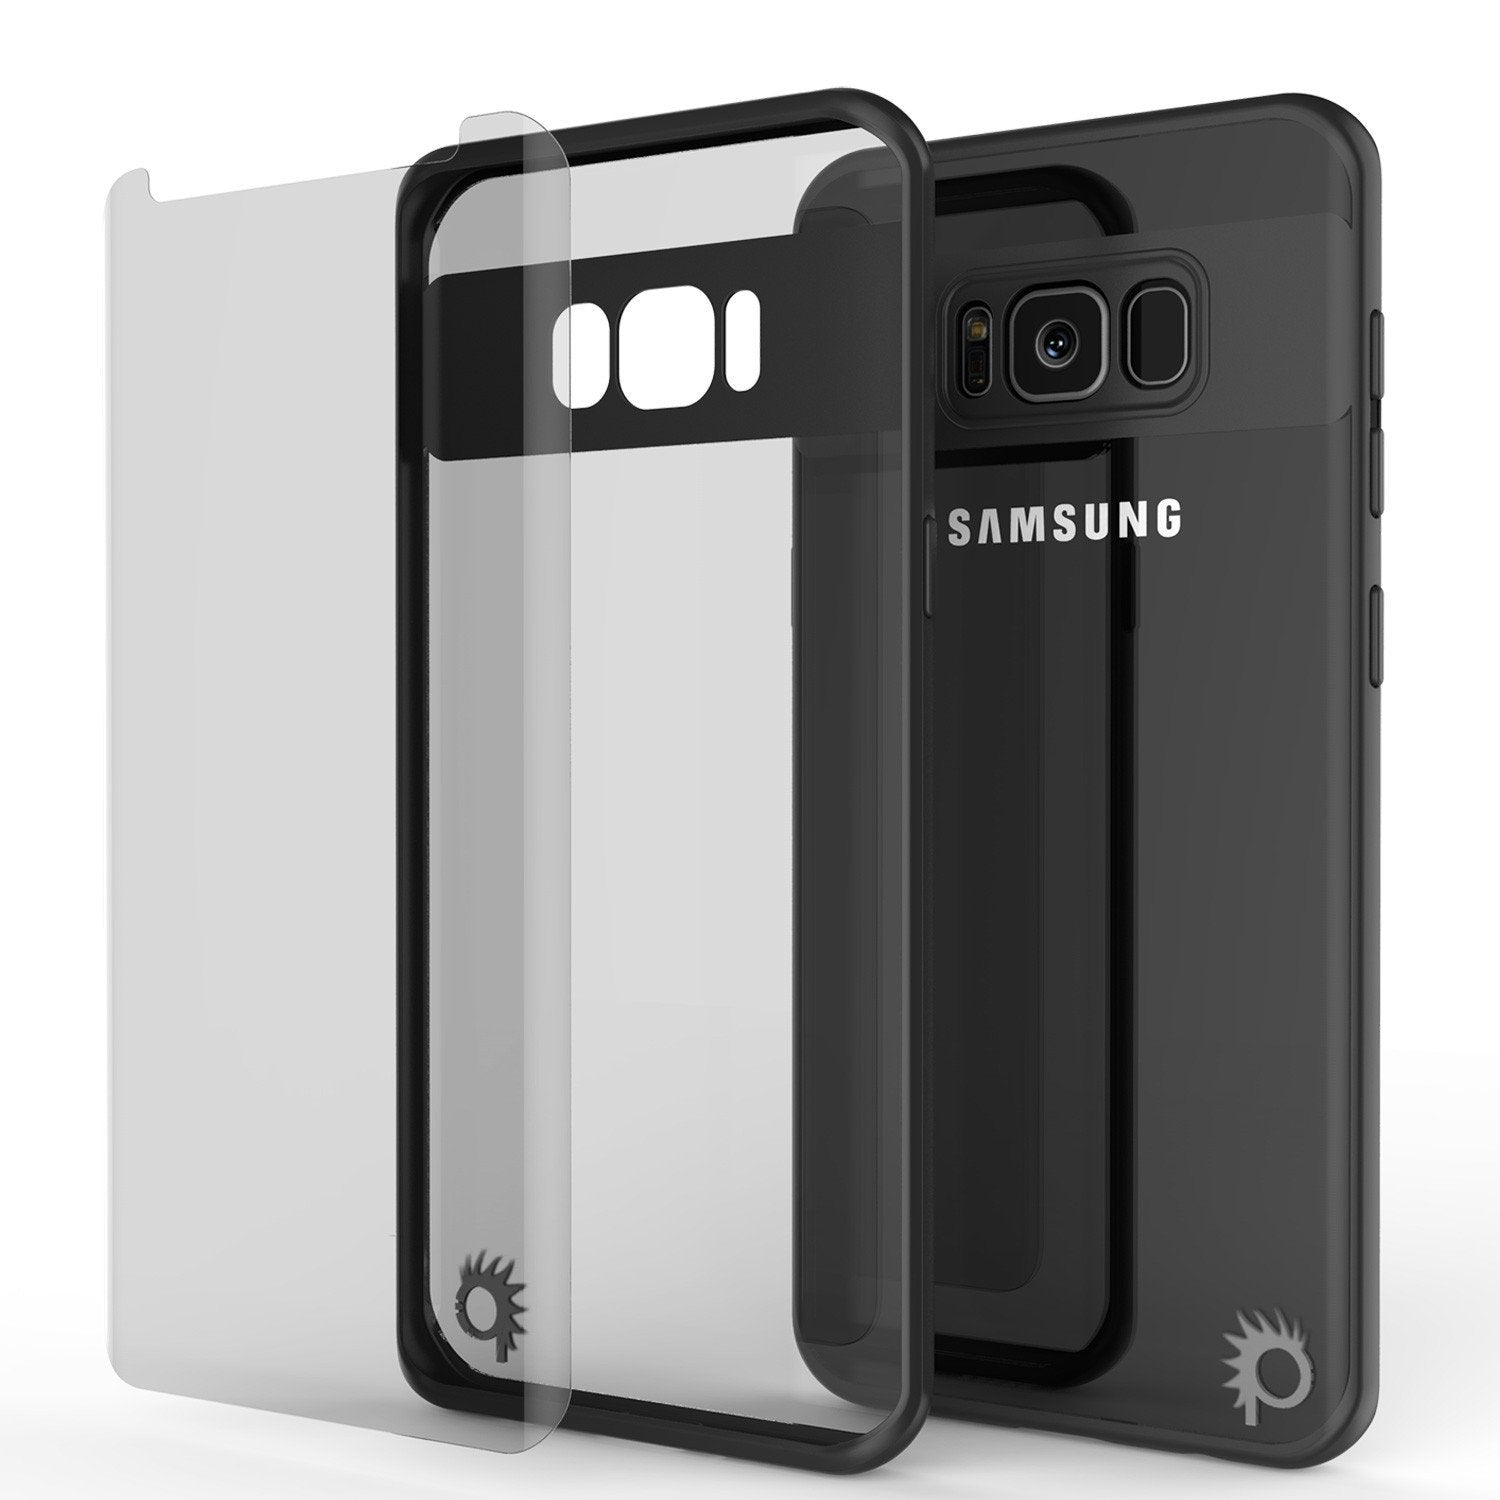 Galaxy S8 Case, Punkcase [MASK Series] [BLACK] Full Body Hybrid Dual Layer TPU Cover W/ Protective PUNKSHIELD Screen Protector - PunkCase NZ